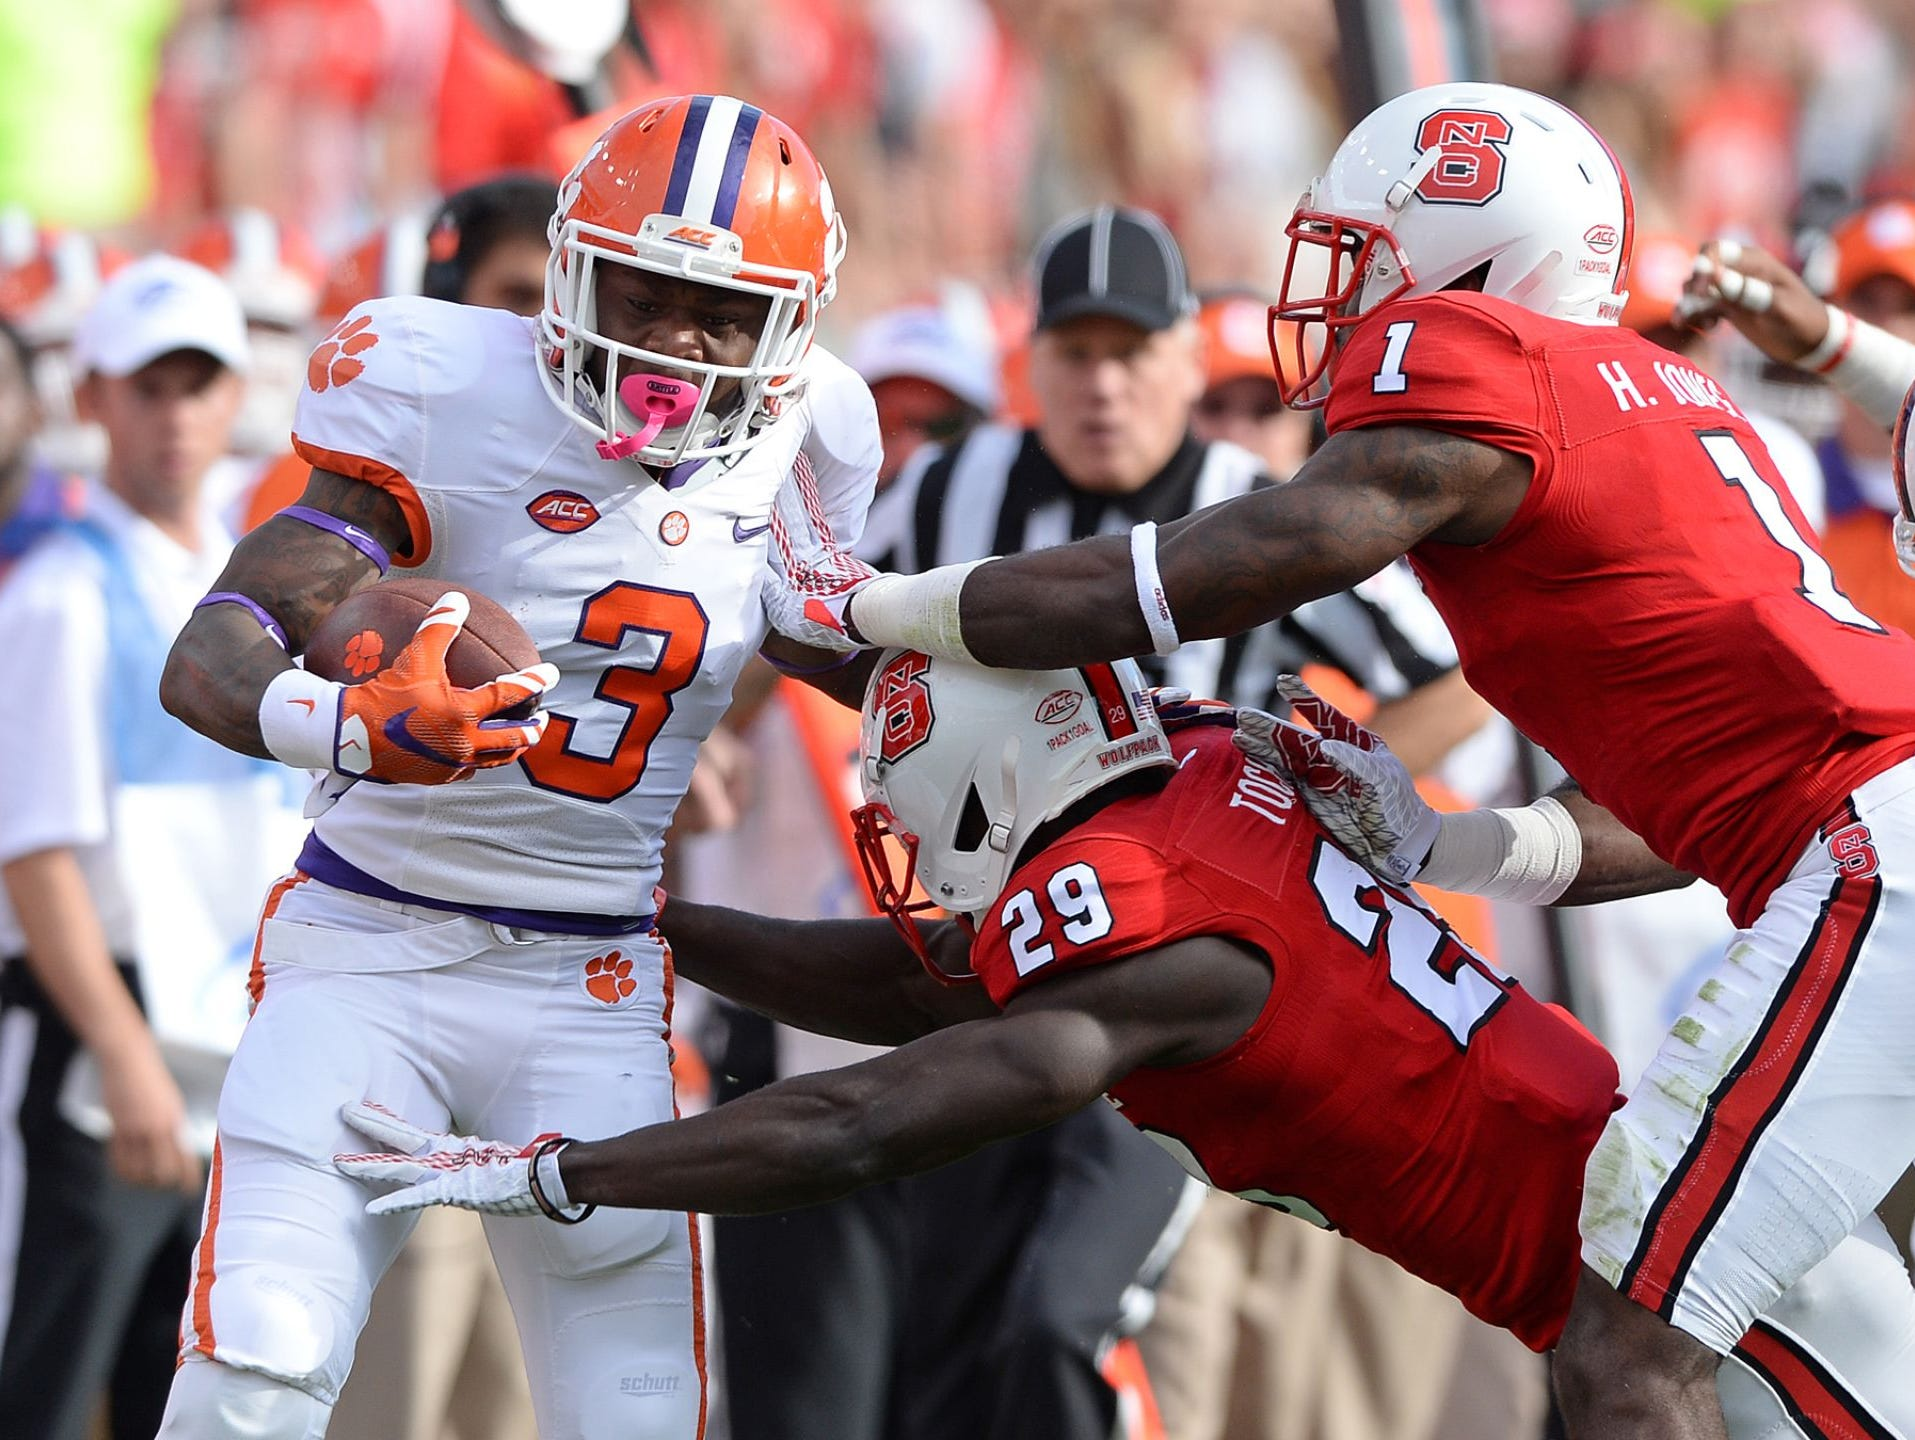 Clemson retained the No. 2 spot in the FourSight College Football Playoff projection.